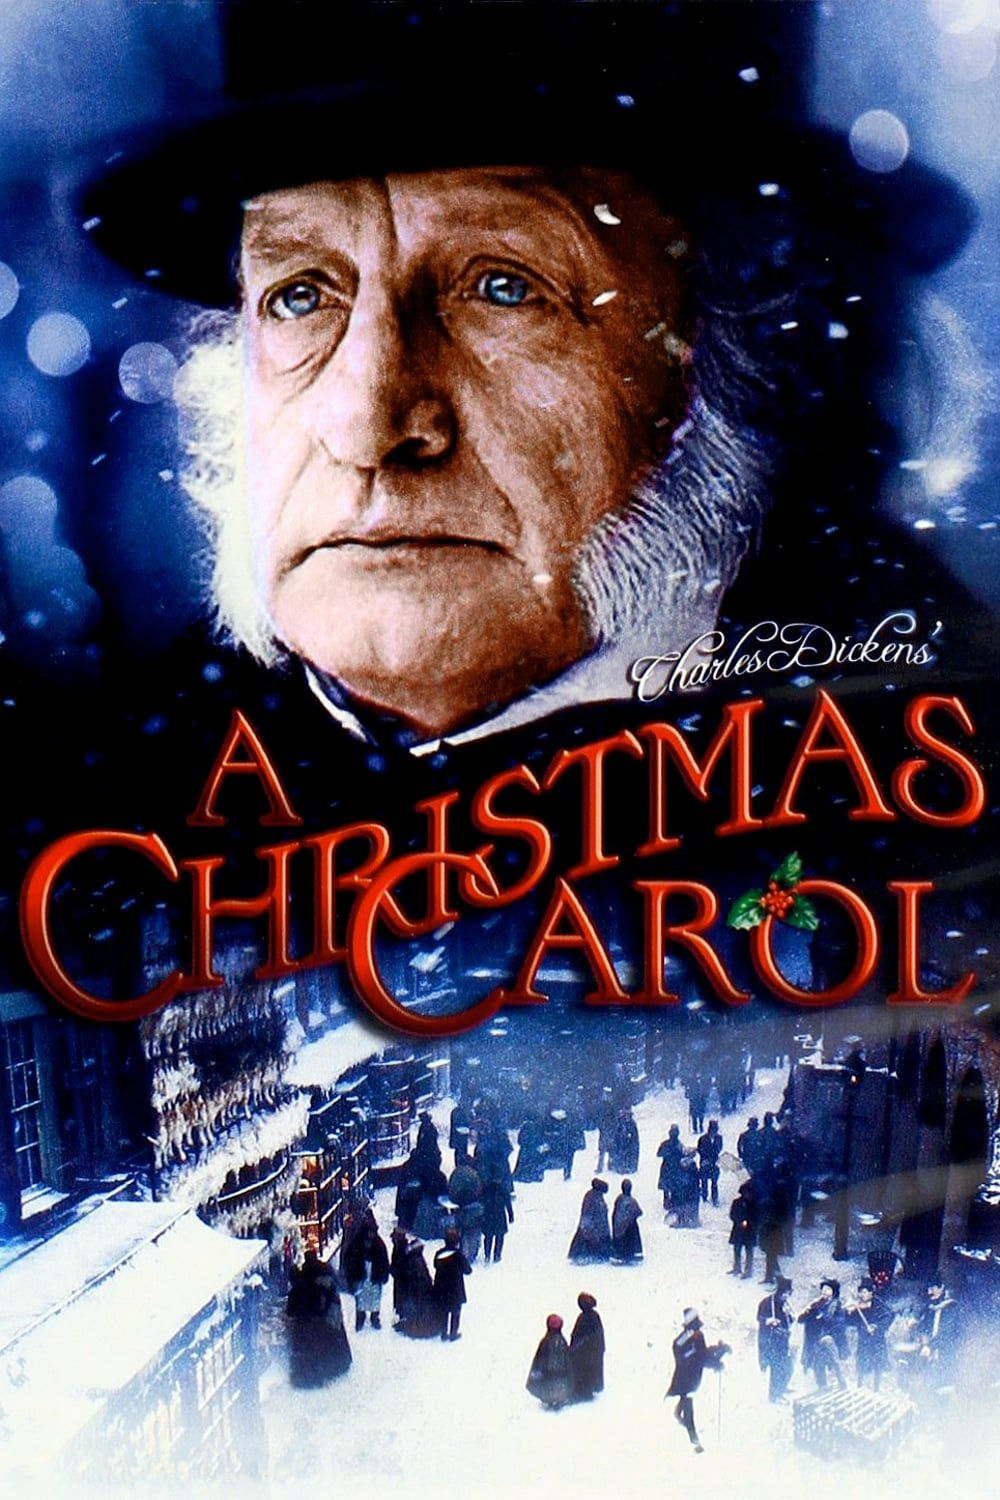 A Christmas Carol hel film AChristmasCarol movie